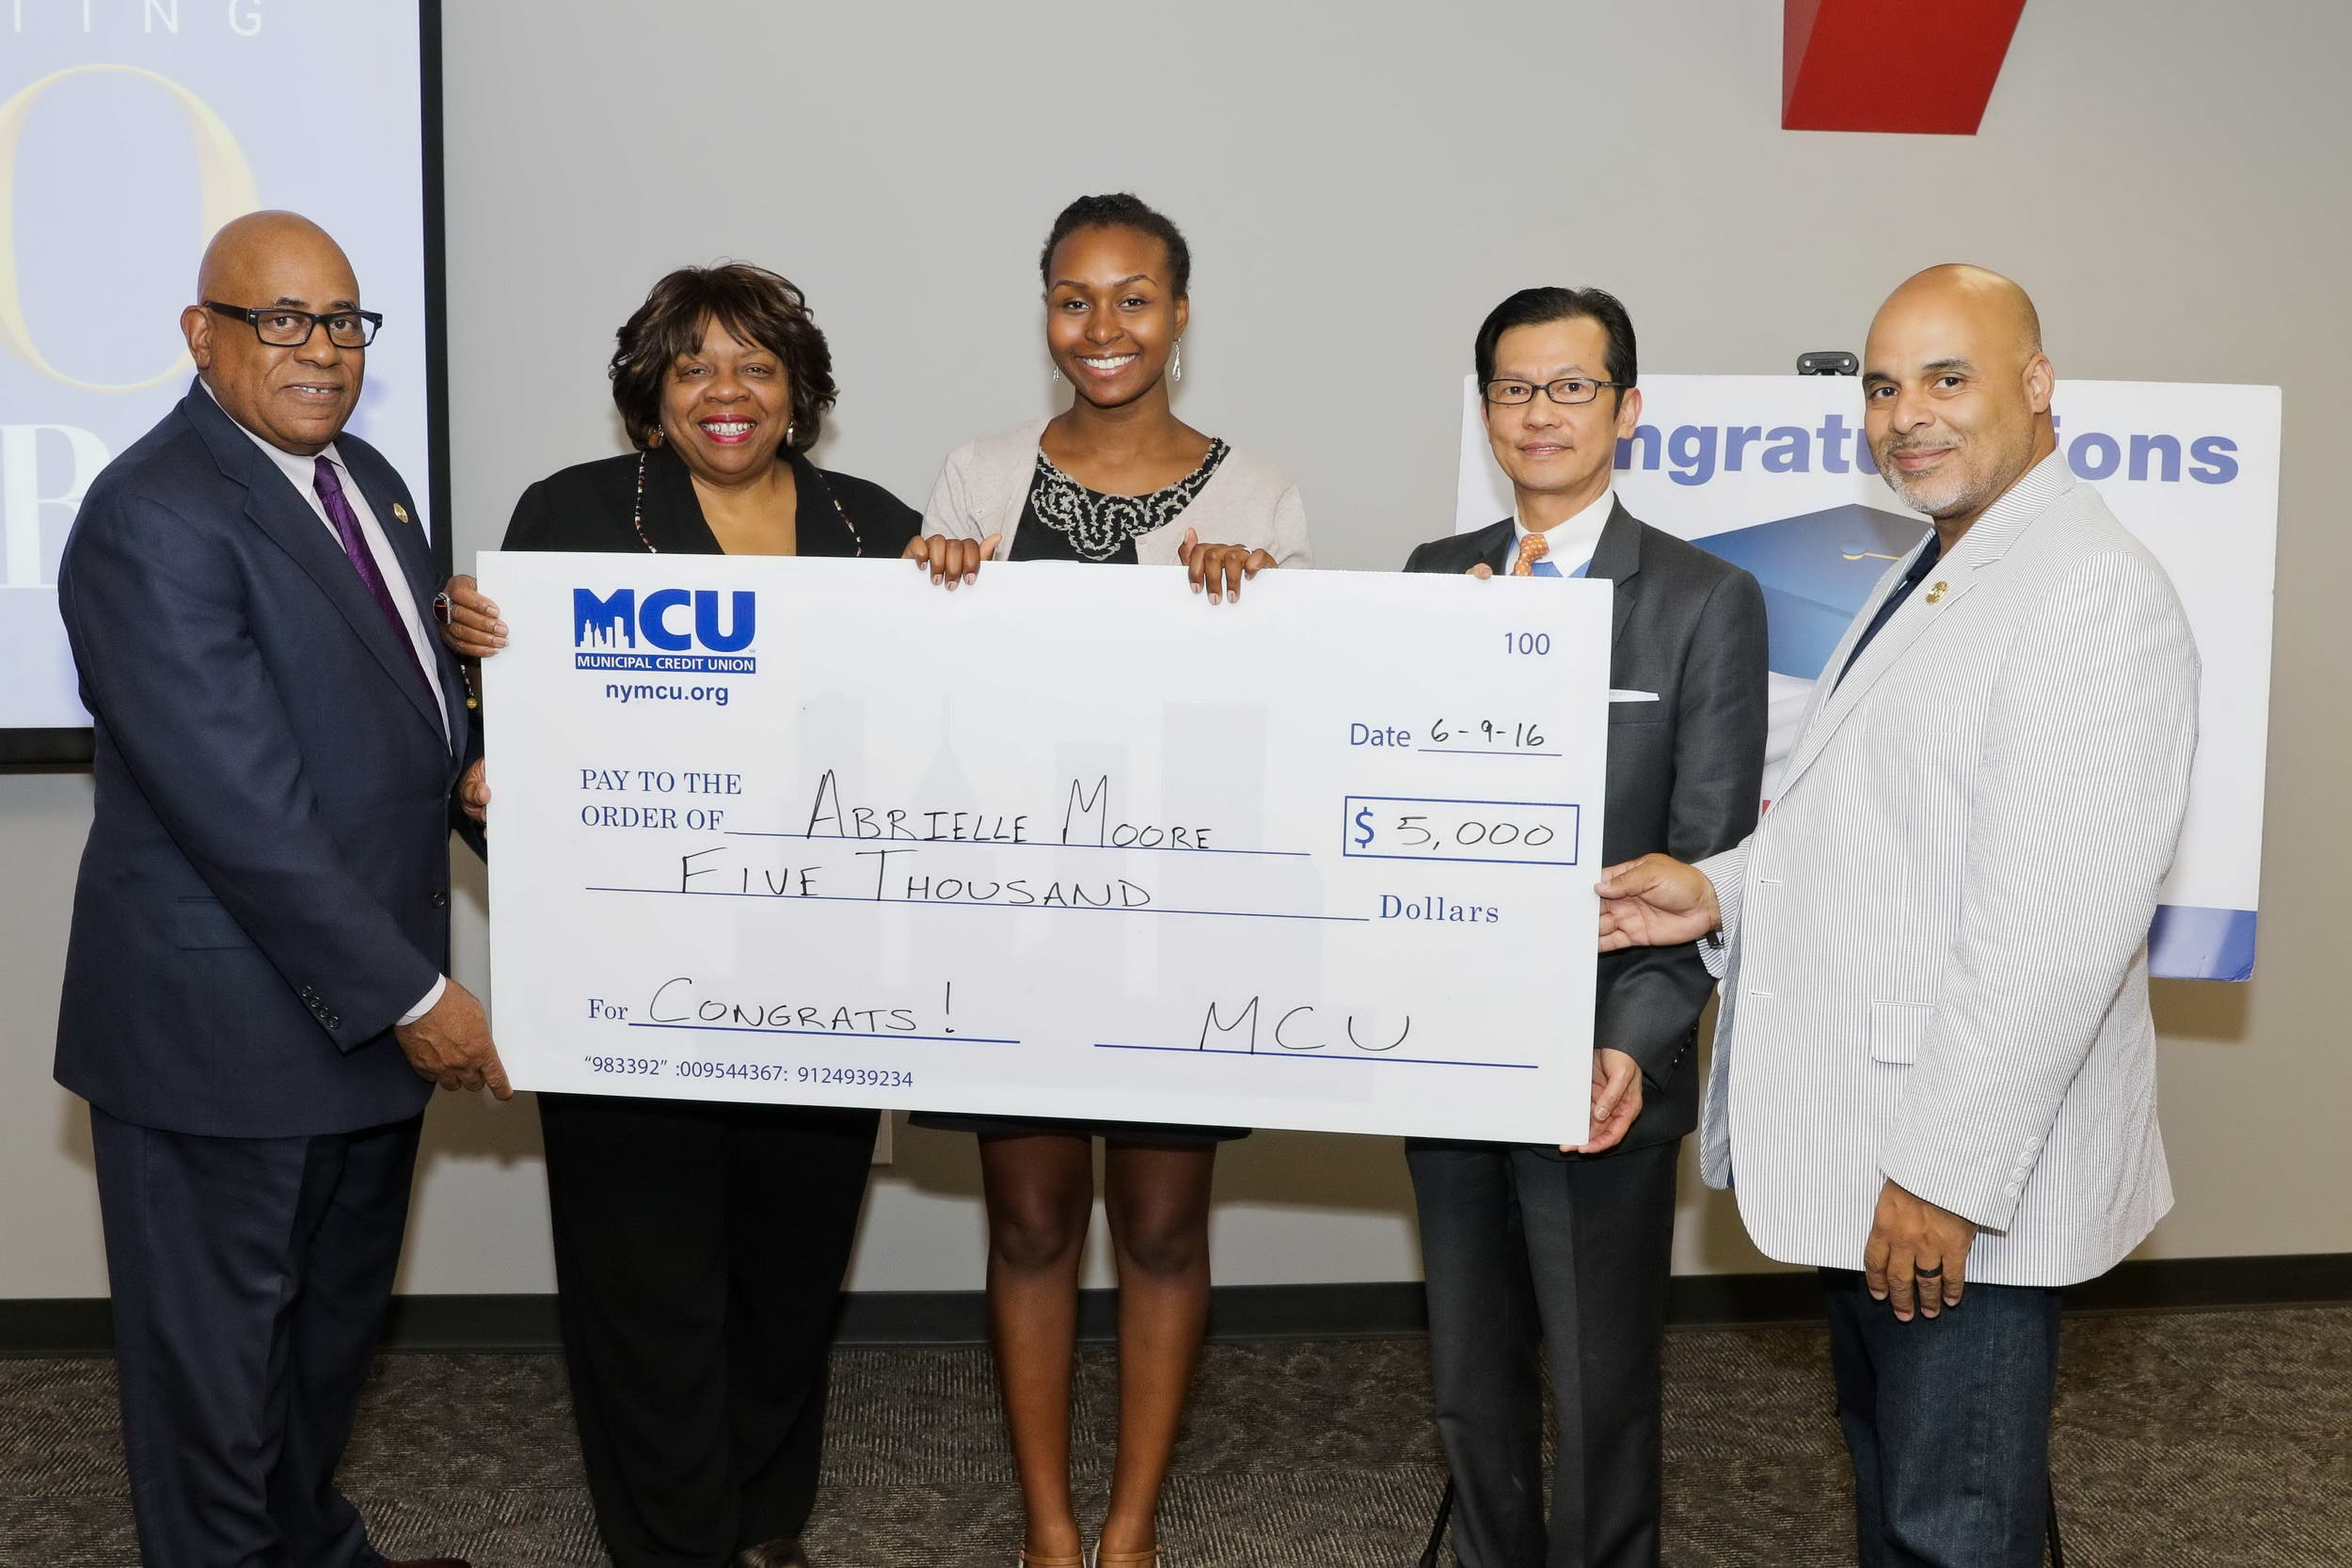 Brooklyn's Abrielle Moore Wins $5,000 Scholarship From Municipal